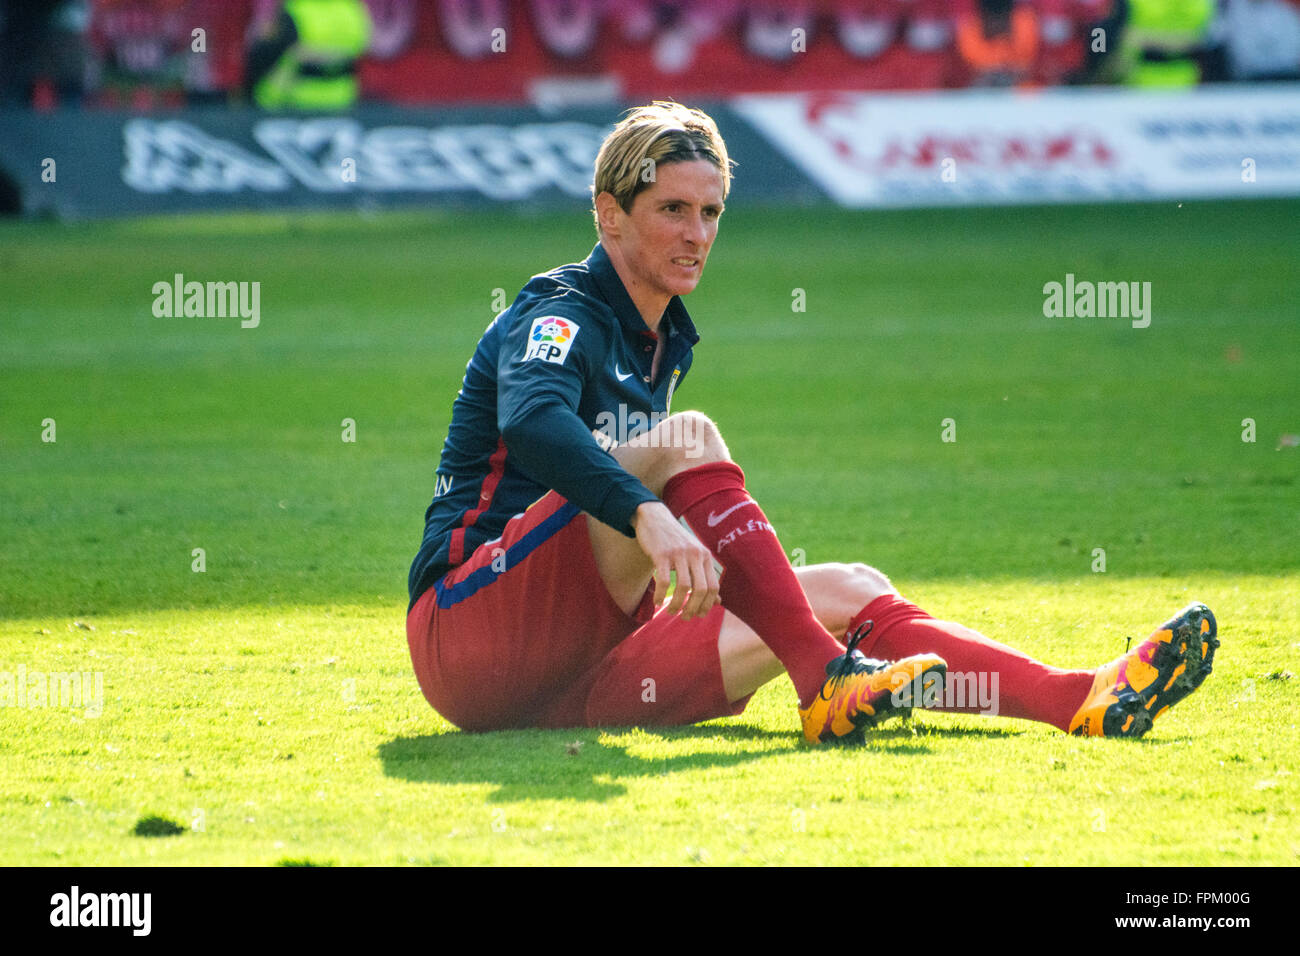 Gijon, Spain. 19th March, 2016. Fernando Torres (Atletico de Madrid) during football match of Spanish 'La Liga' - Stock Image